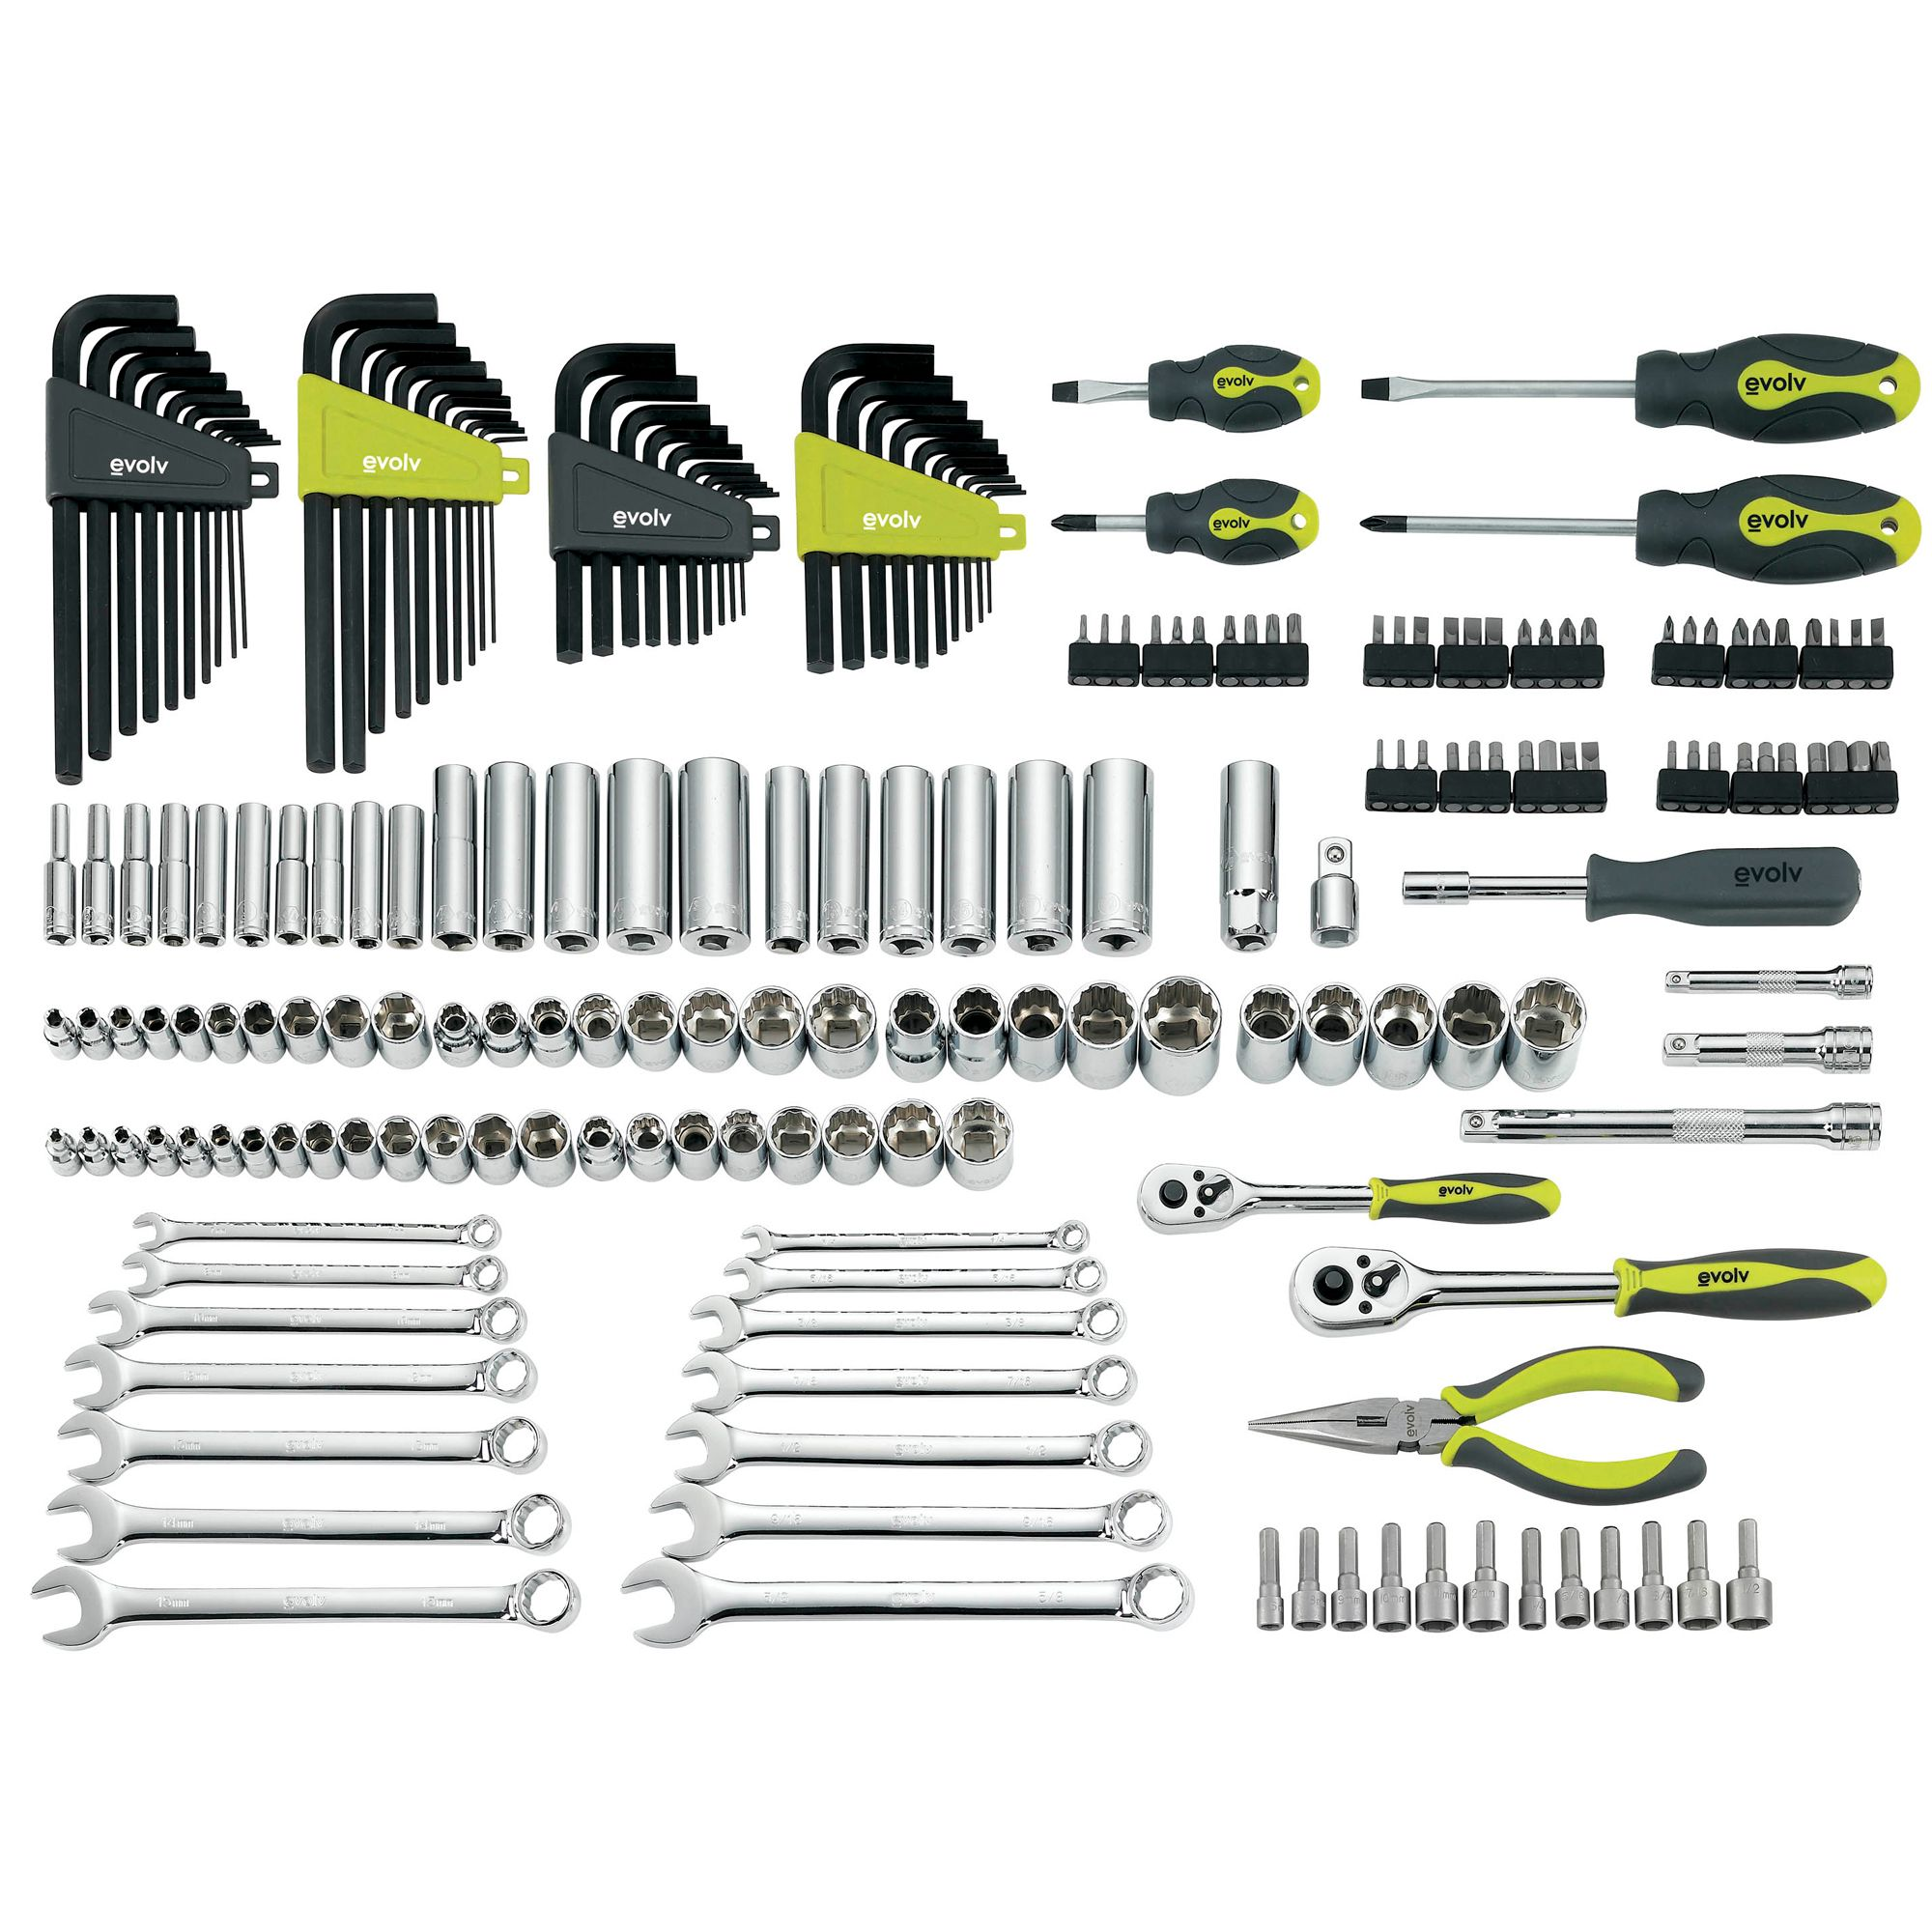 200 pc. Mechanics Tool Set